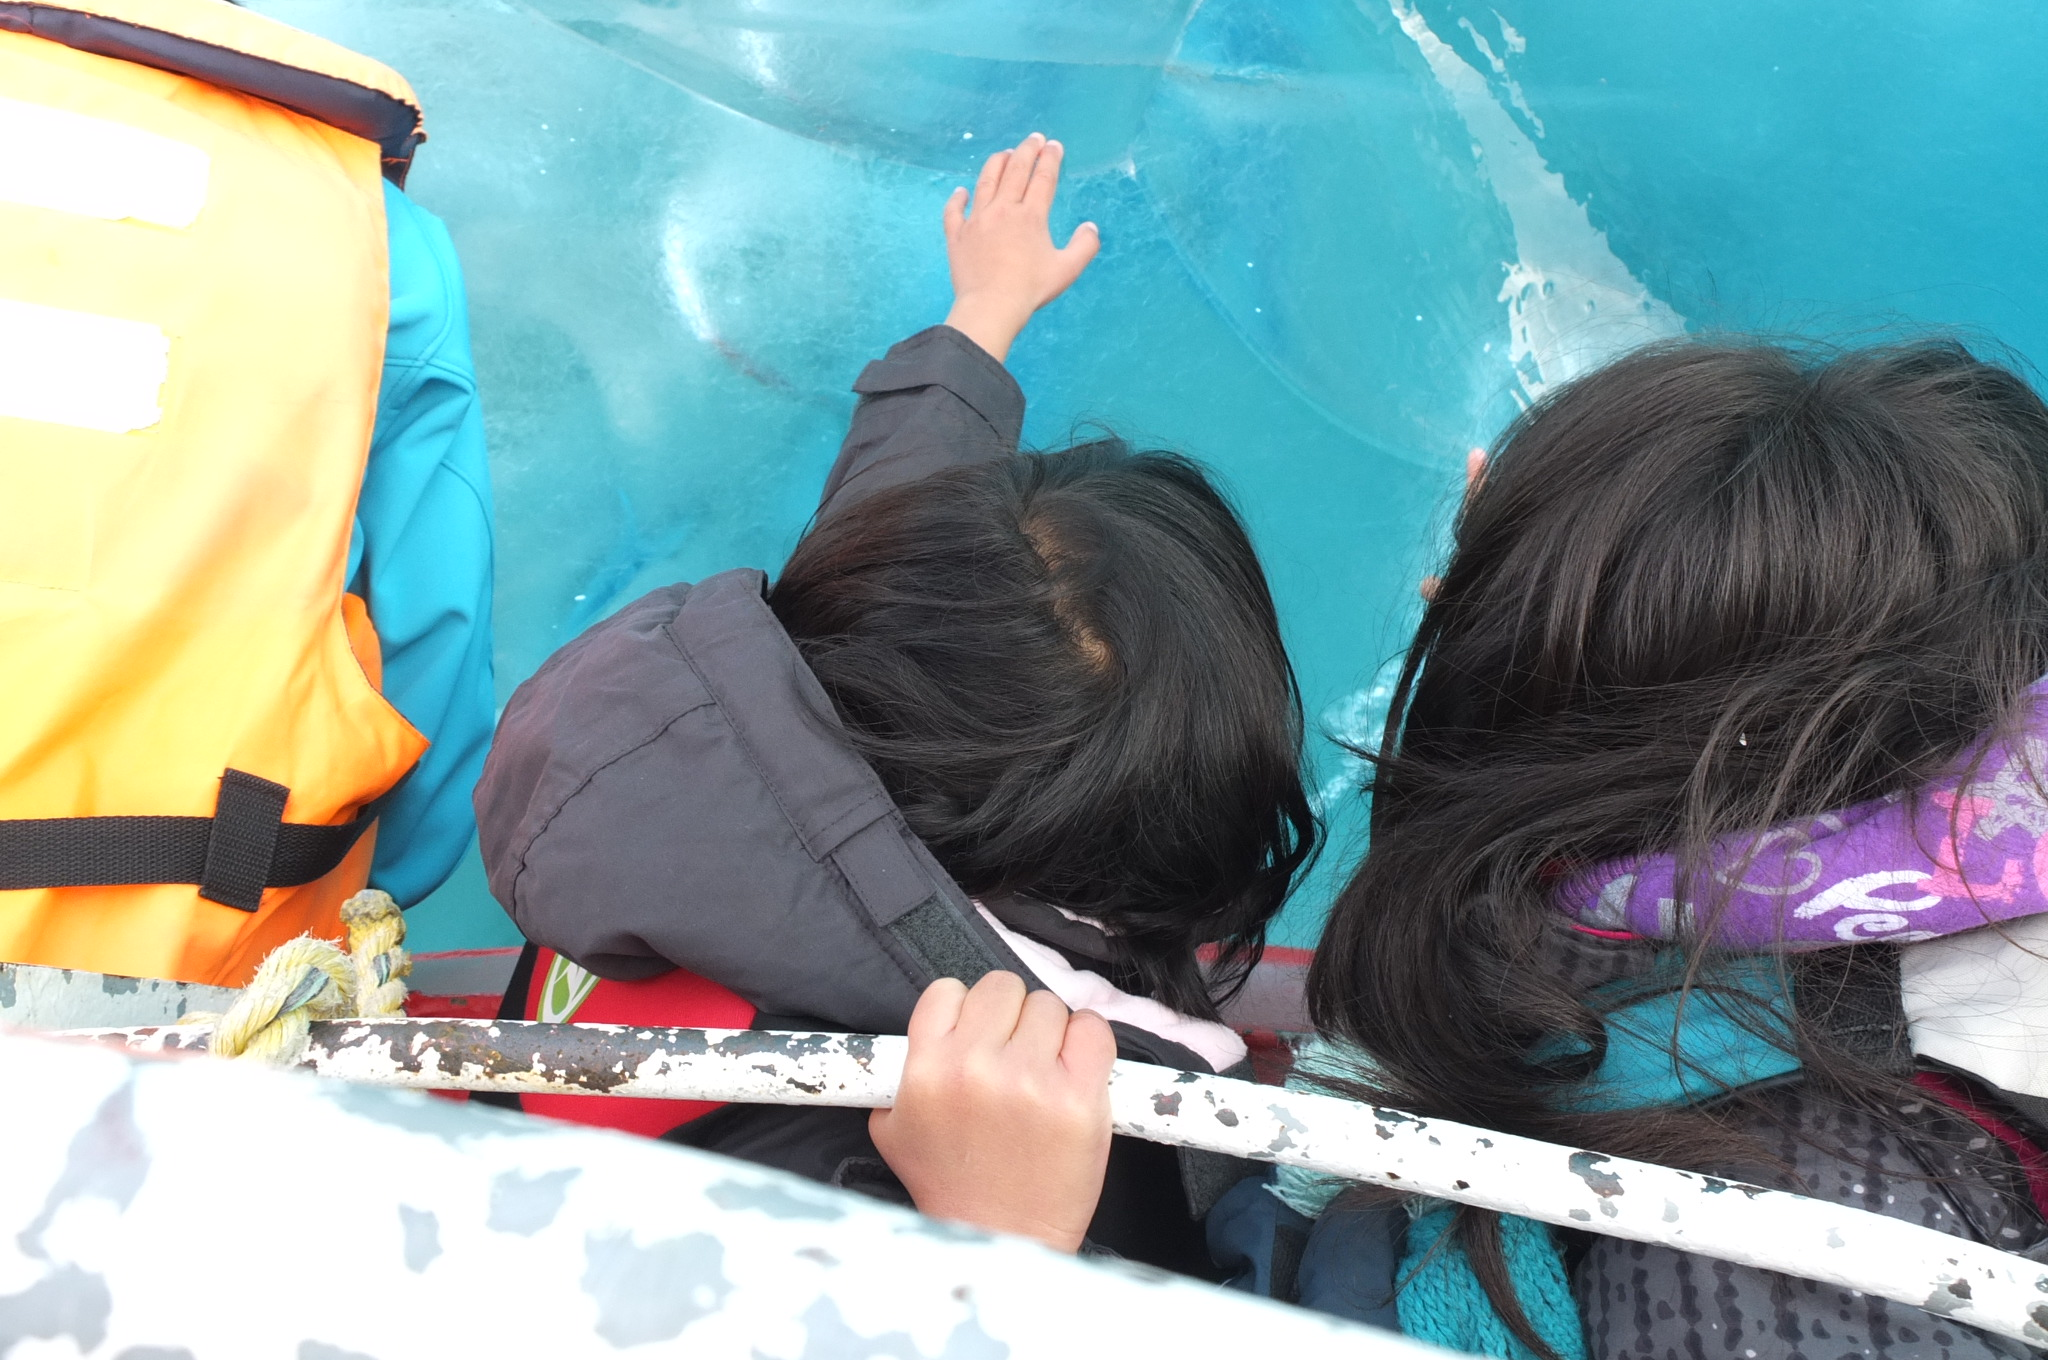 Reaching out to touch an ice berg